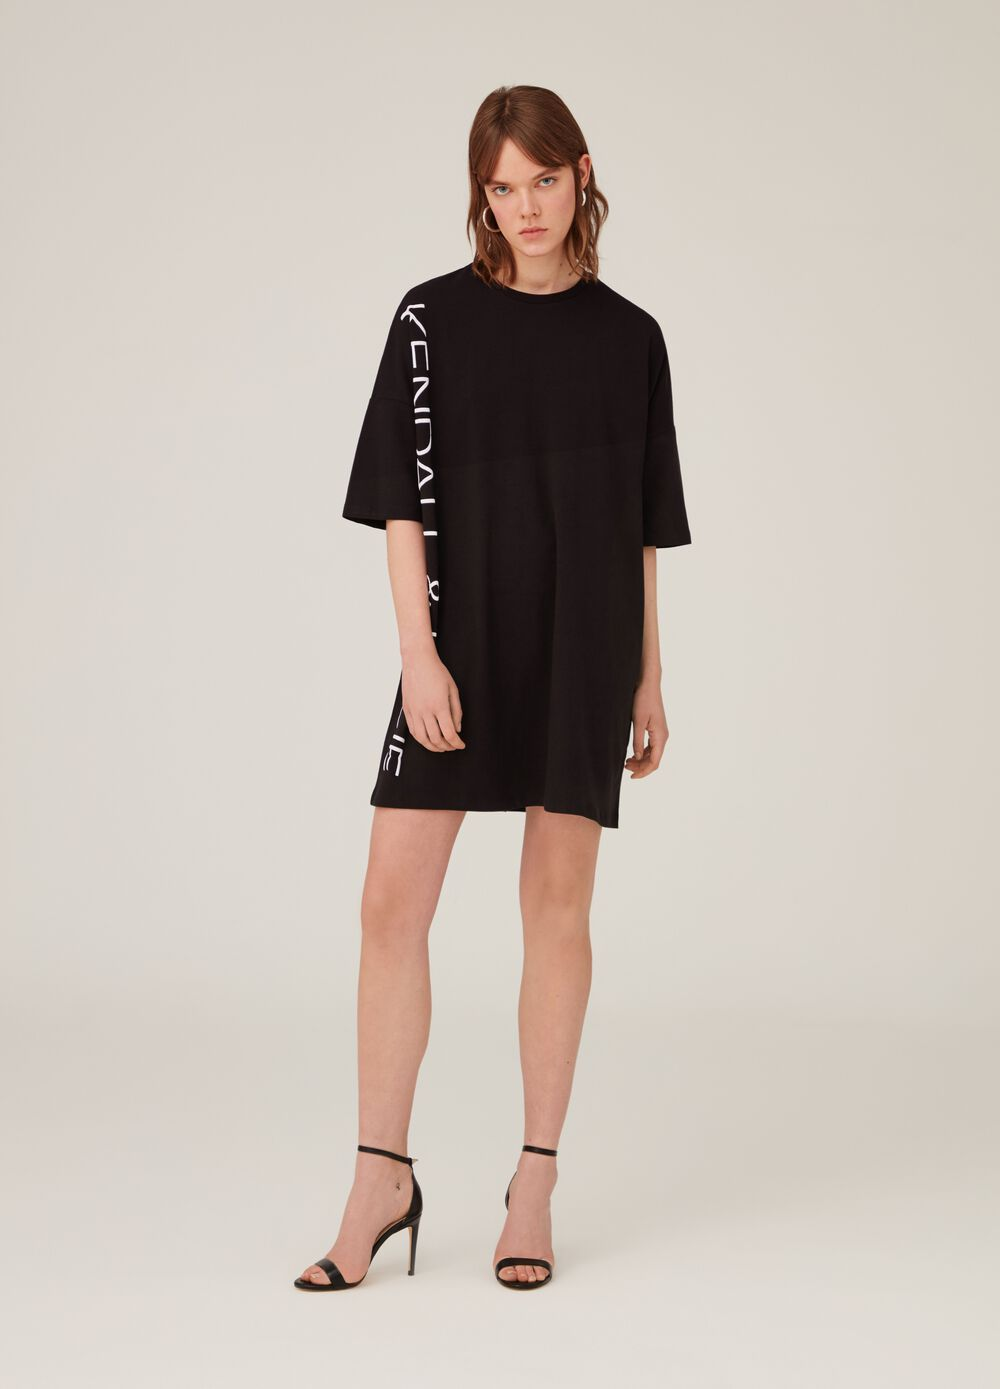 K+K for OVS stretch cotton dress with lettering